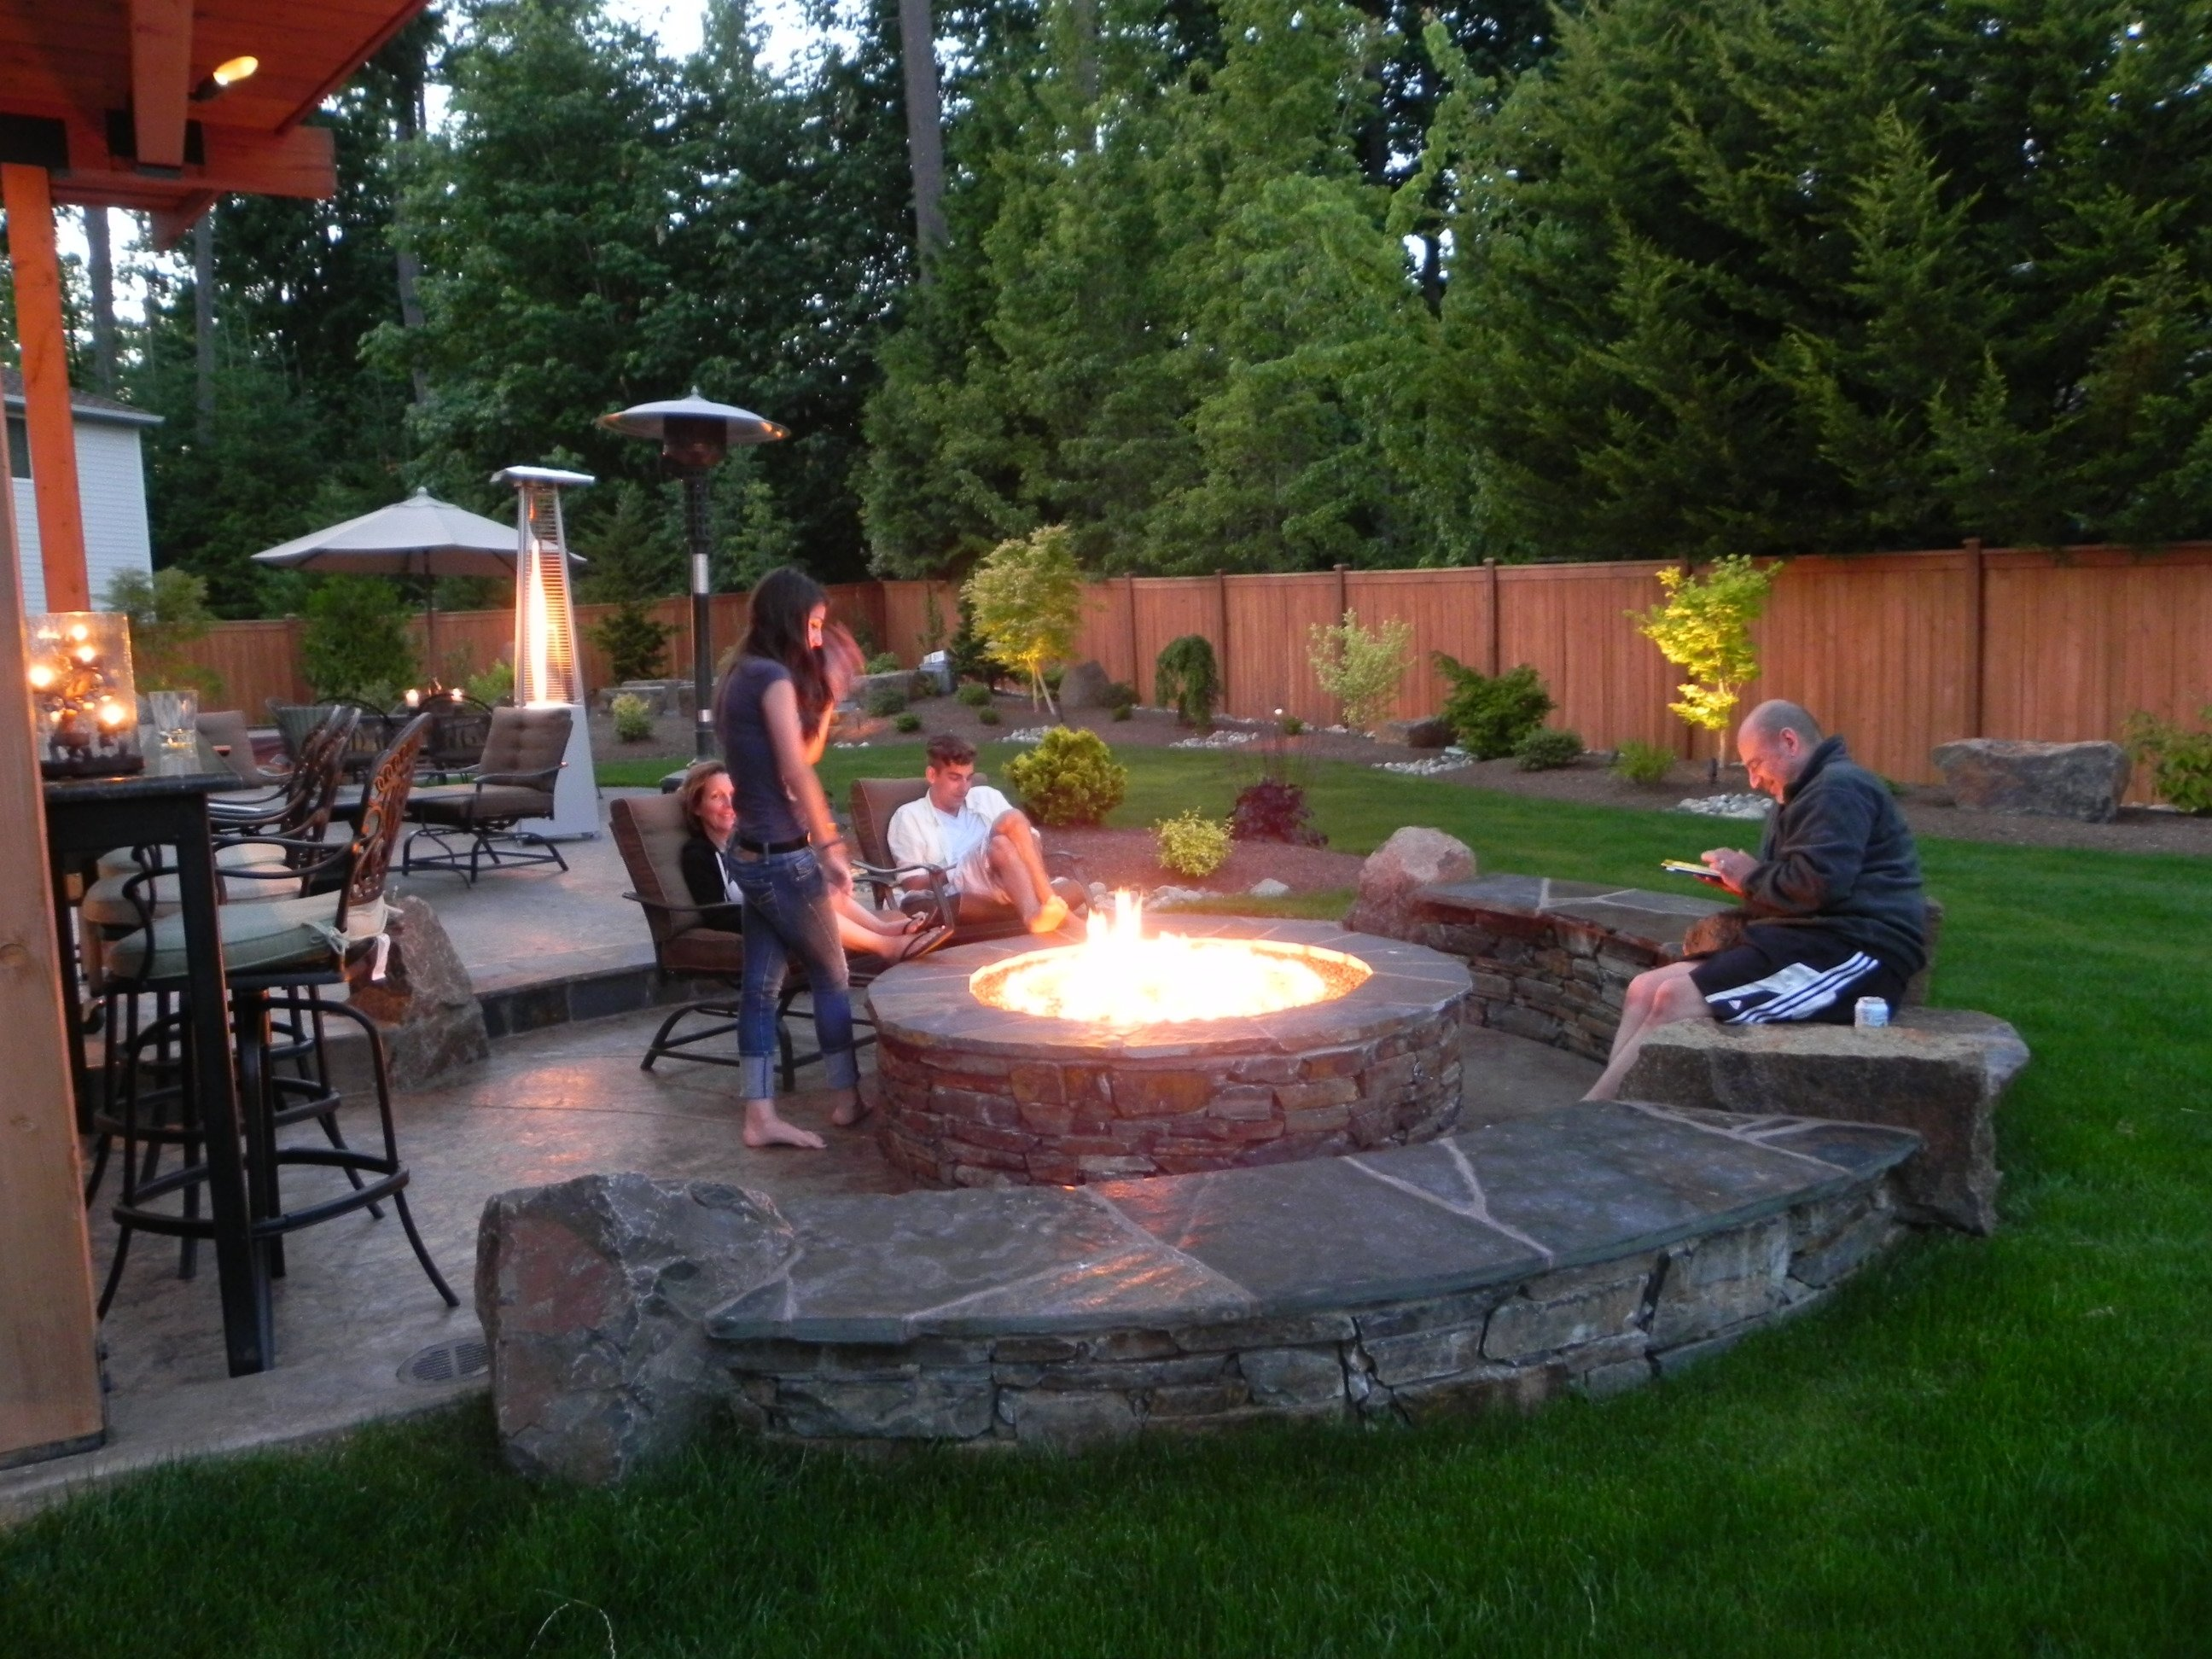 10 Fantastic Outdoor Patio Ideas With Fire Pit ideas of outdoor fire pit patio design ideas outdoor fire pit 2020